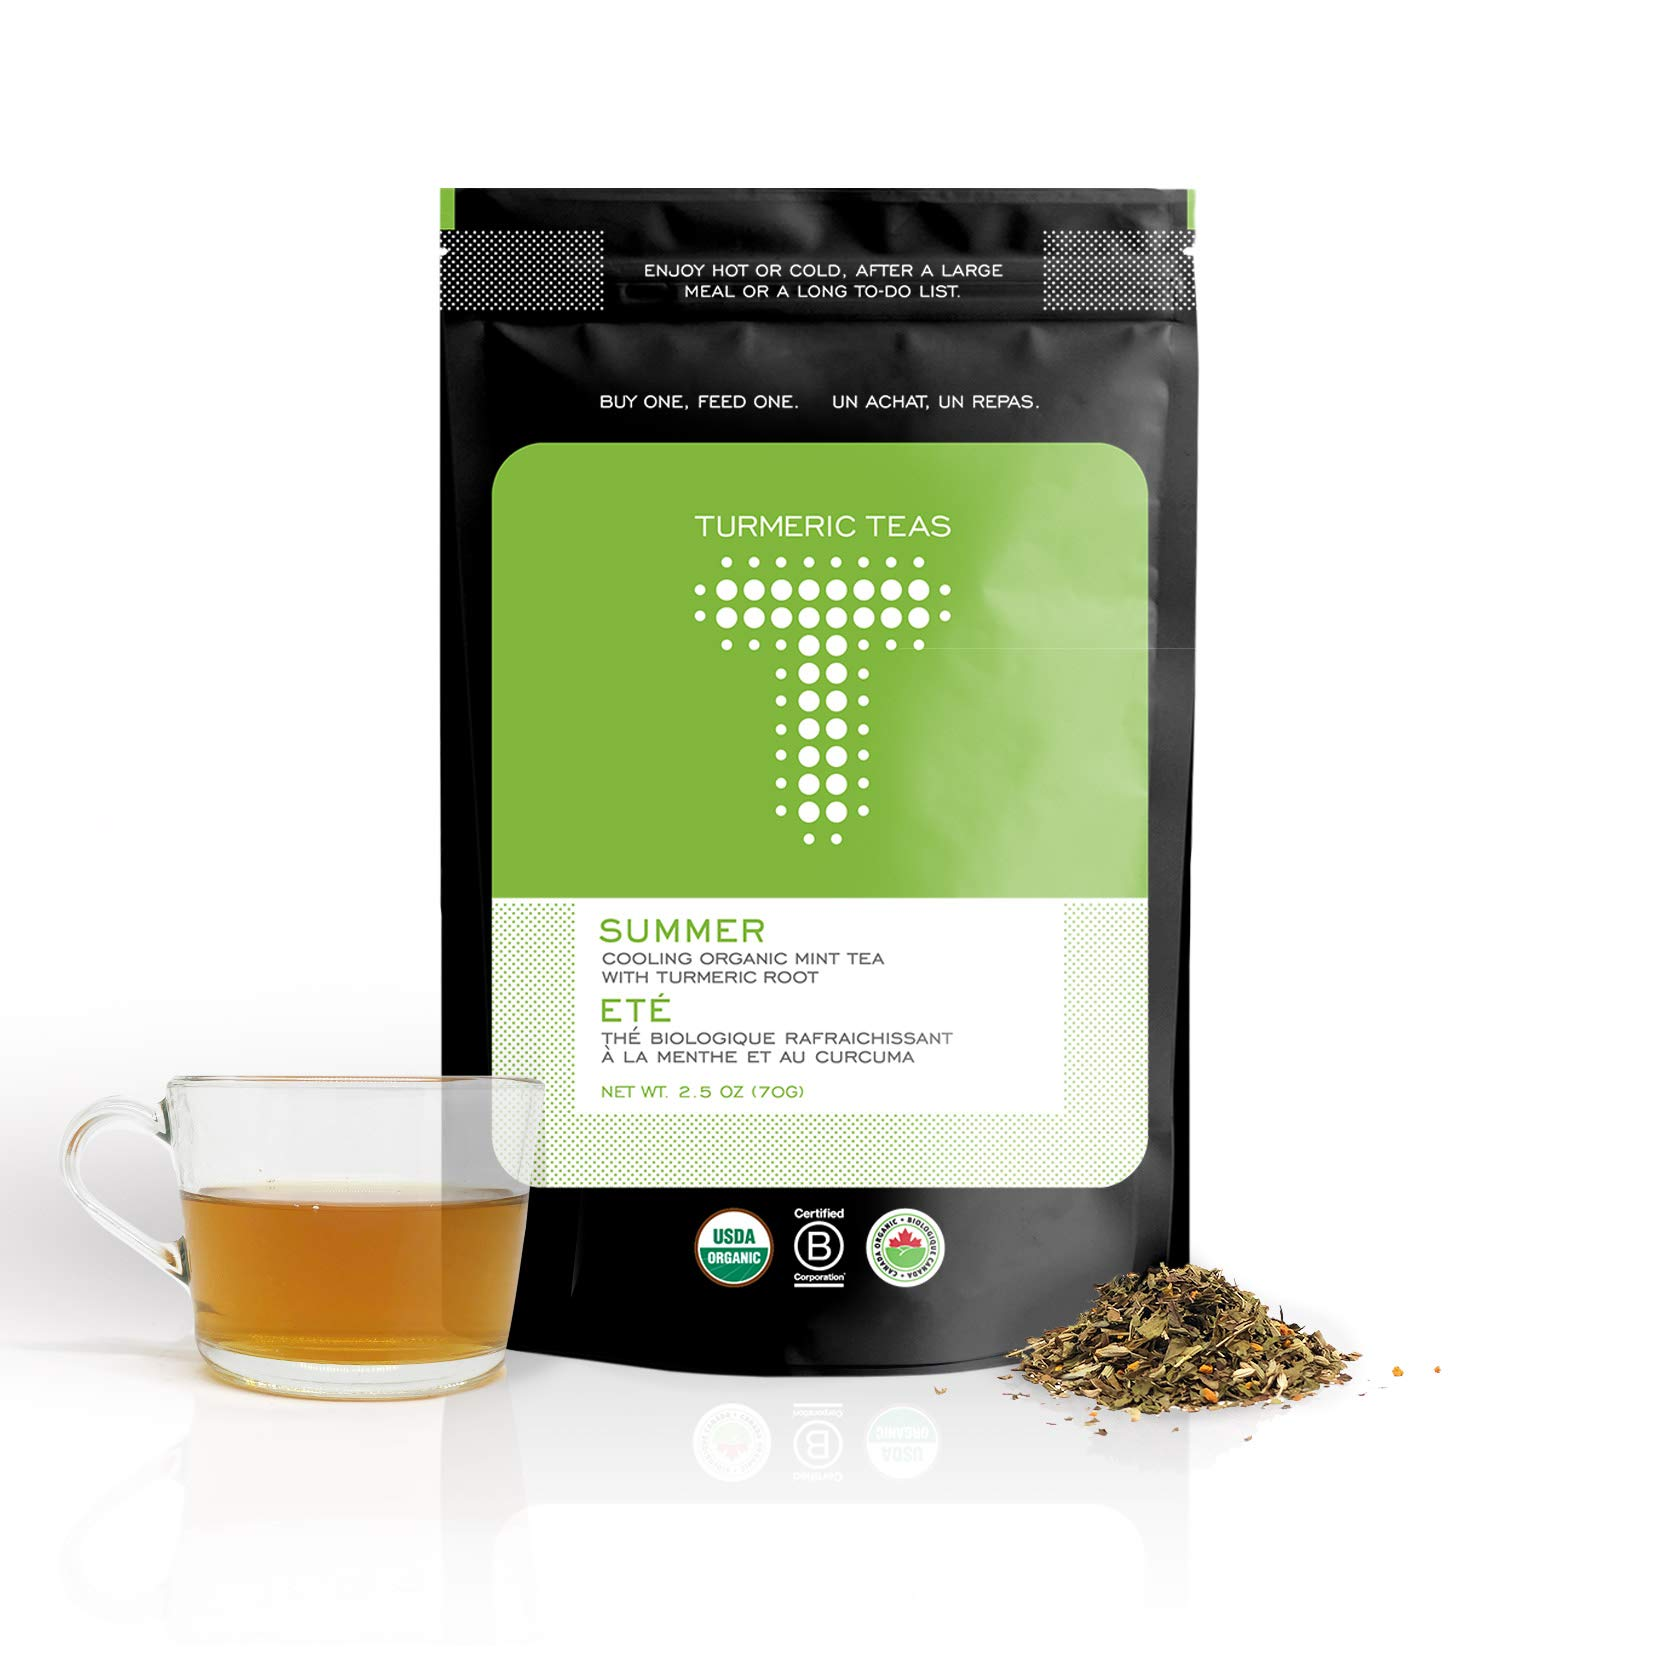 Turmeric Teas SUMMER - Herbal Tea Made With Organic Turmeric, Peppermint, and Fennel, 50-70 Servings (3.5oz) of Loose Leaf Tea, Enjoy Caffeine-Free Tisane that Helps Digestion, Non-GMO